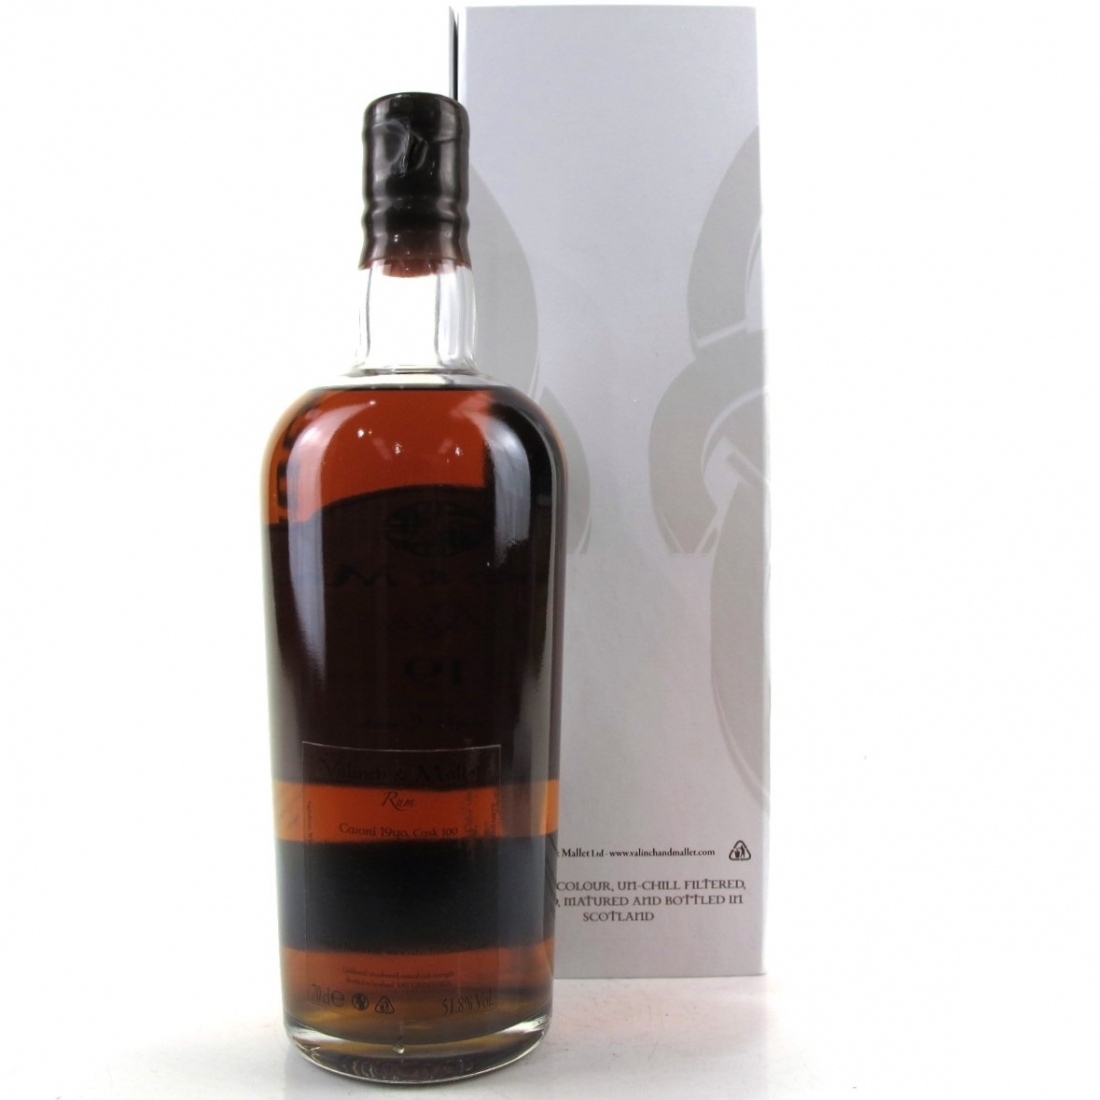 Caroni 1997 Valinch and Mallet 19 Year Old